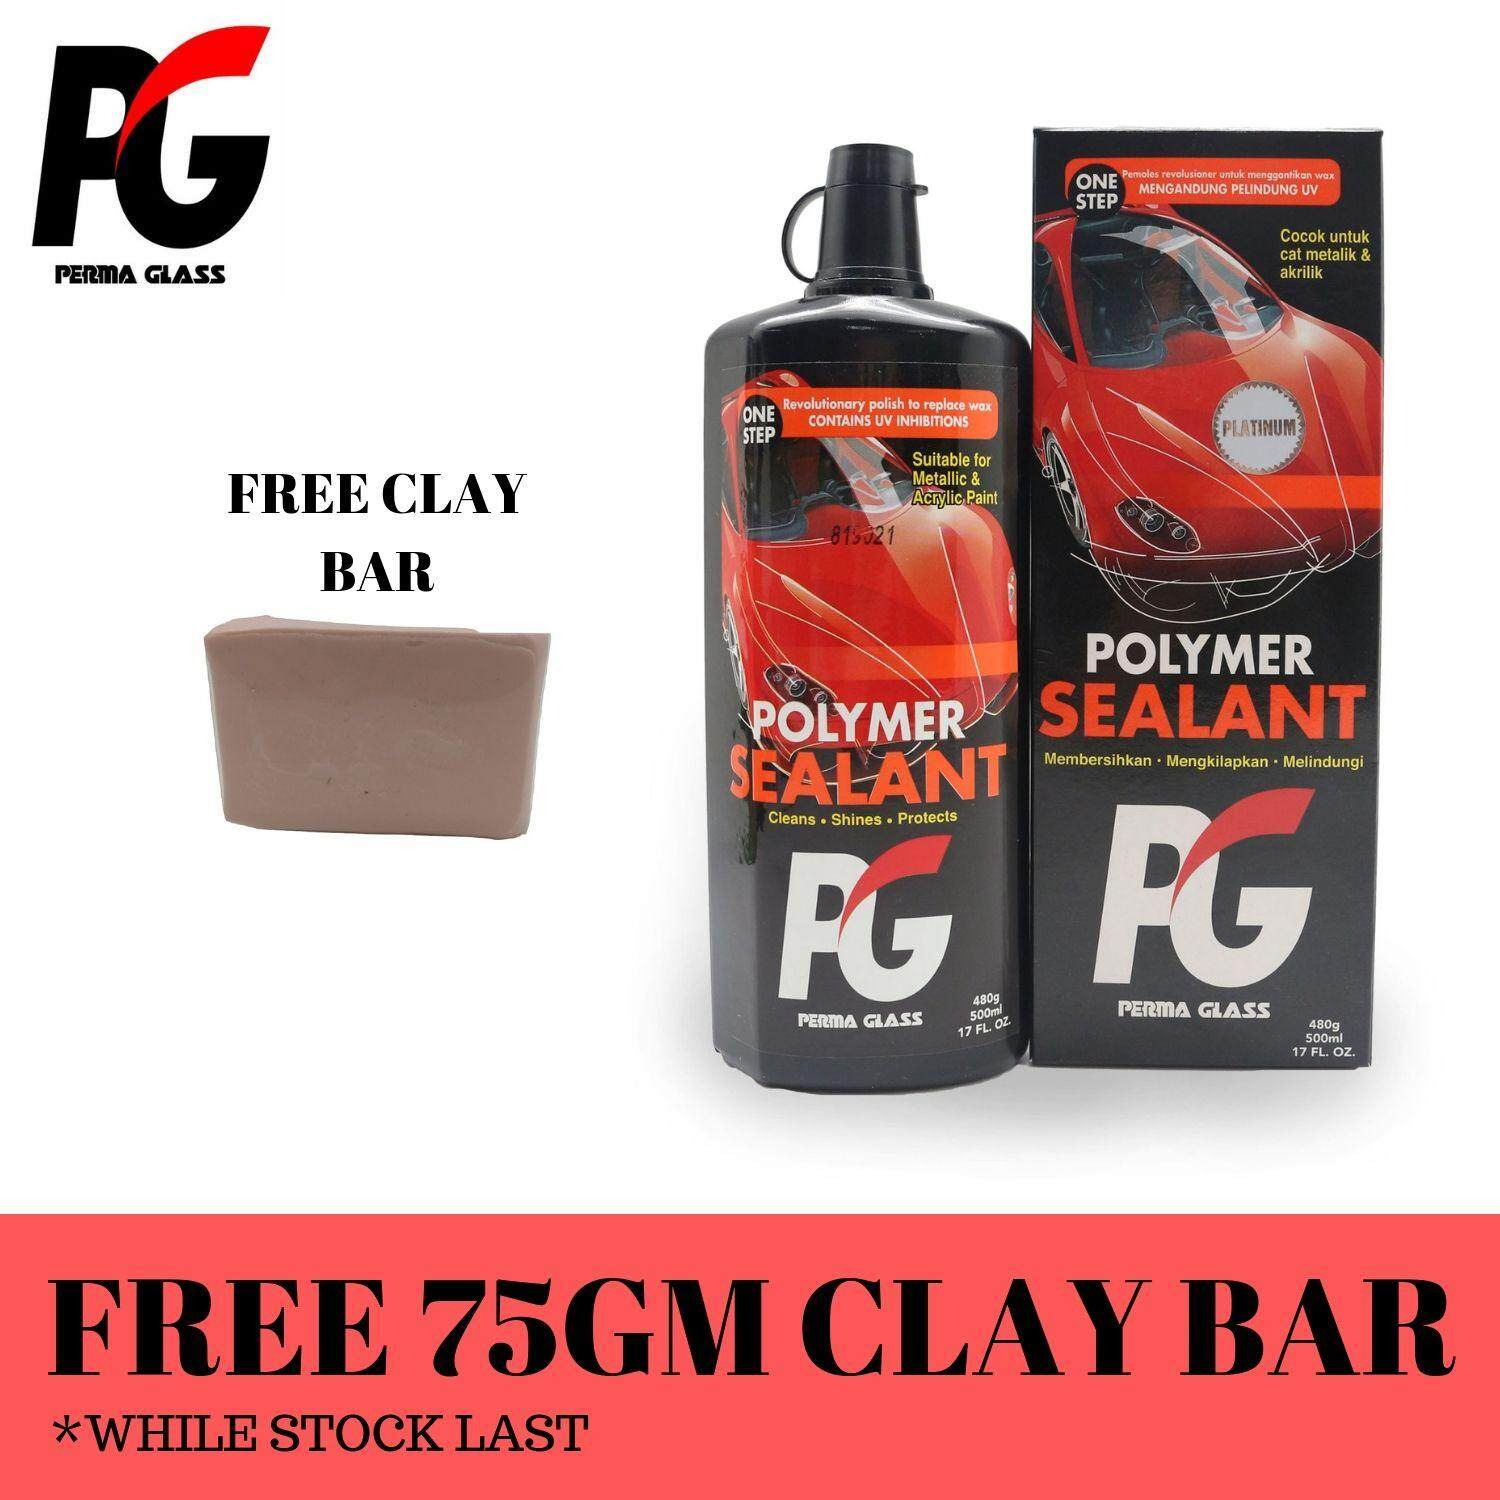 PG PERMA GLASS POLYMER SEALANT (500ML) - CAR PAINT SEALANT AND PROTECTION